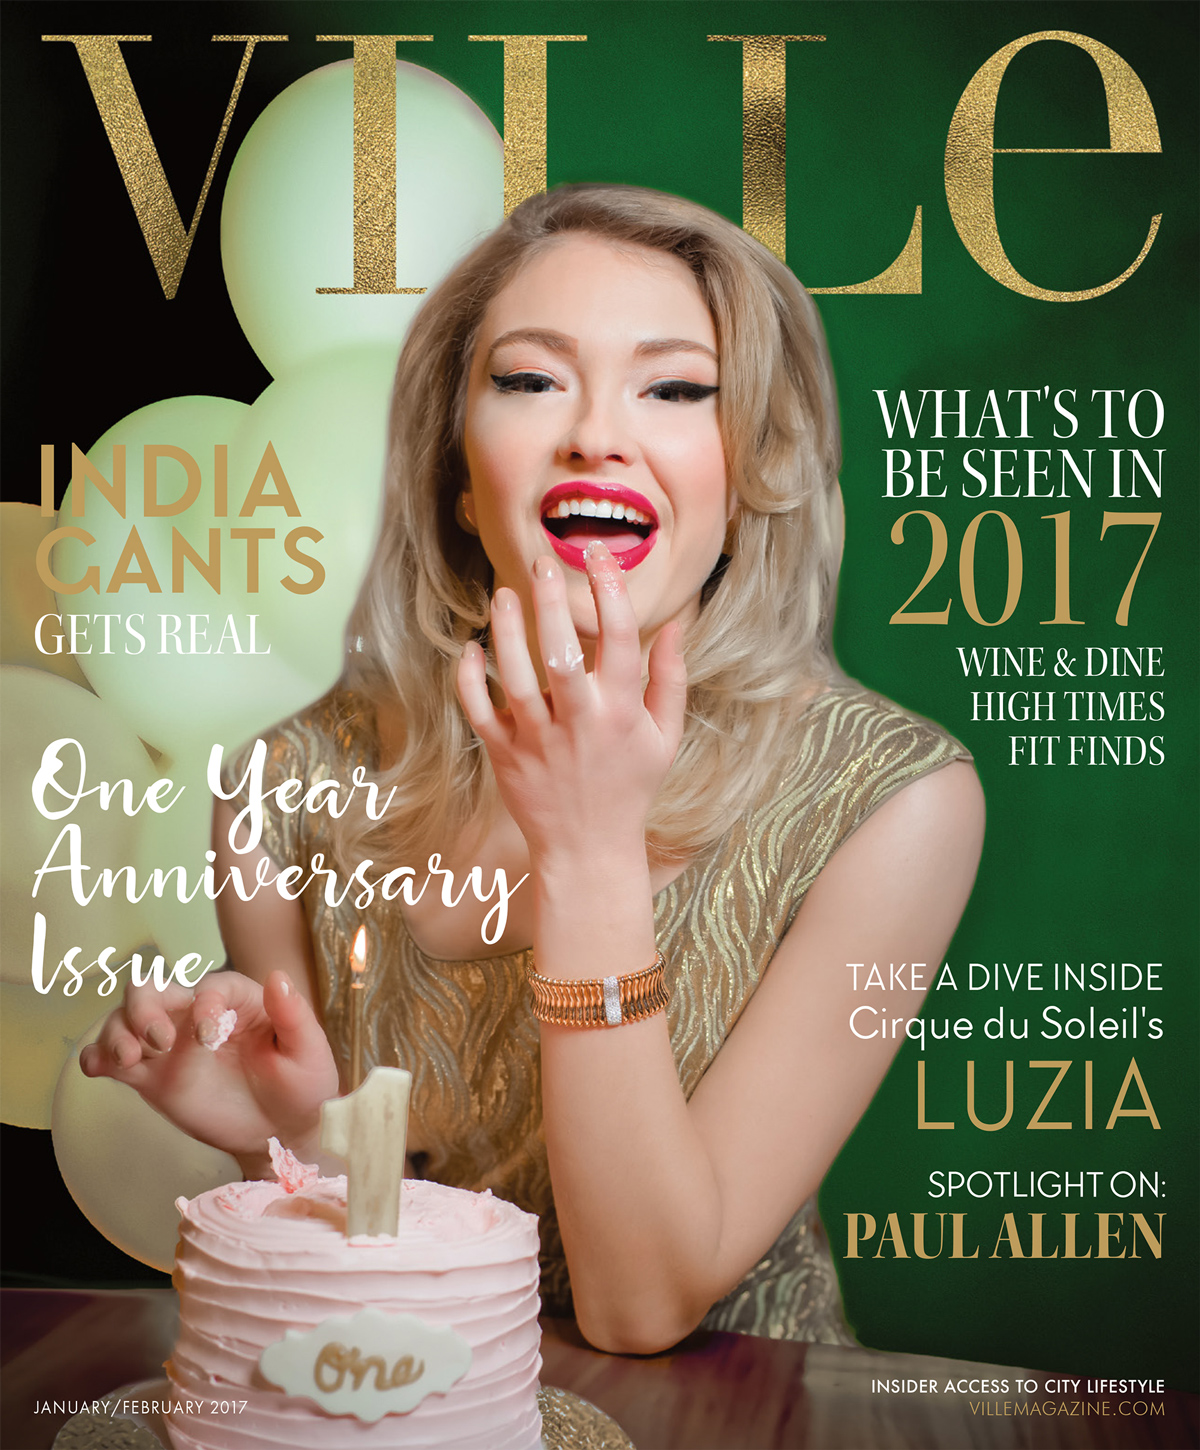 2017 Ville Magazine 1 Year Anniversary Issue